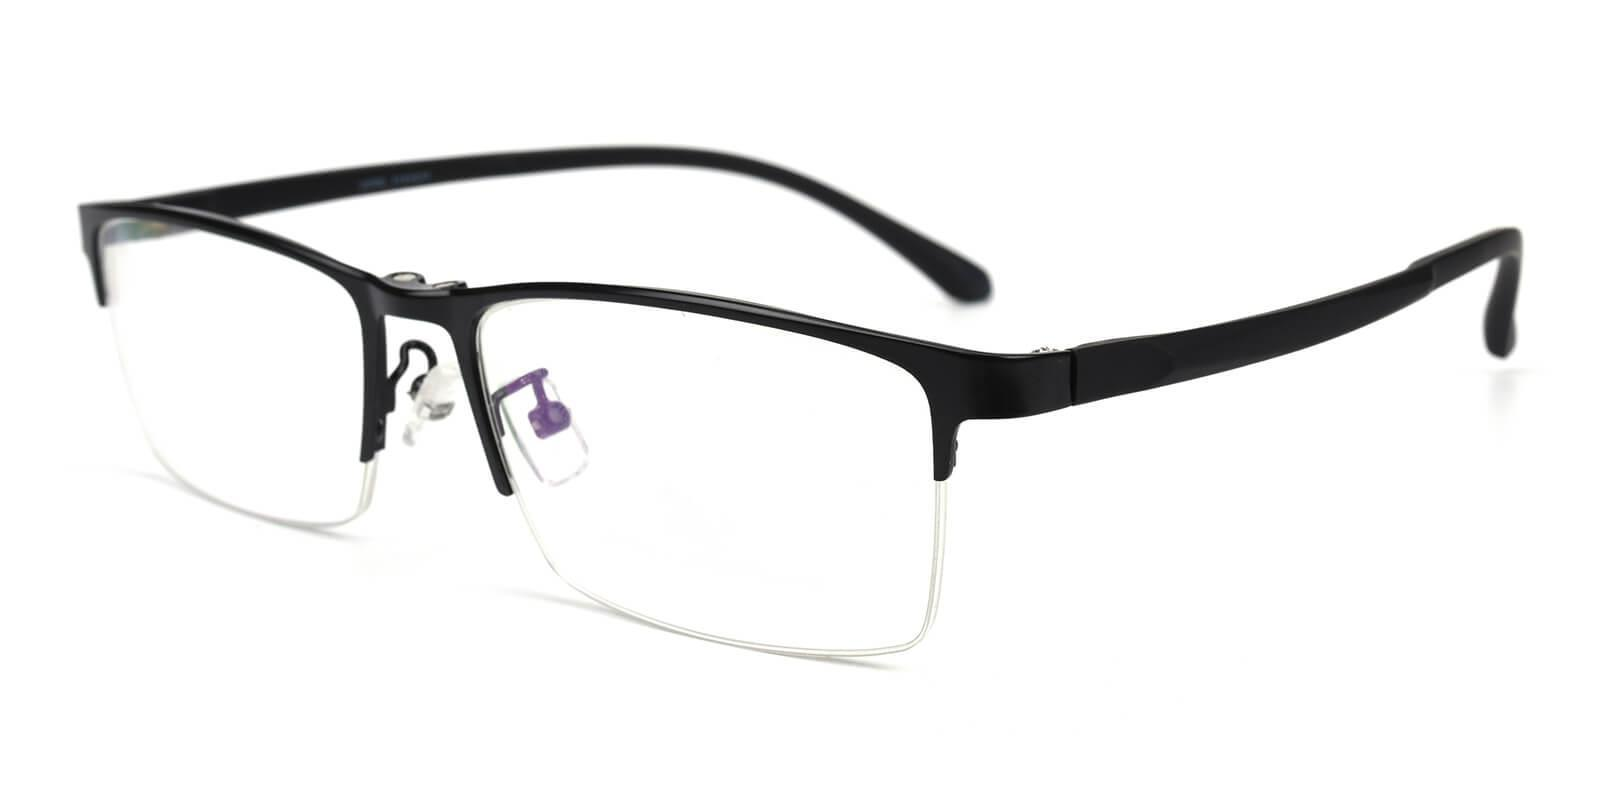 Melody Black Metal Eyeglasses , NosePads , SpringHinges Frames from ABBE Glasses